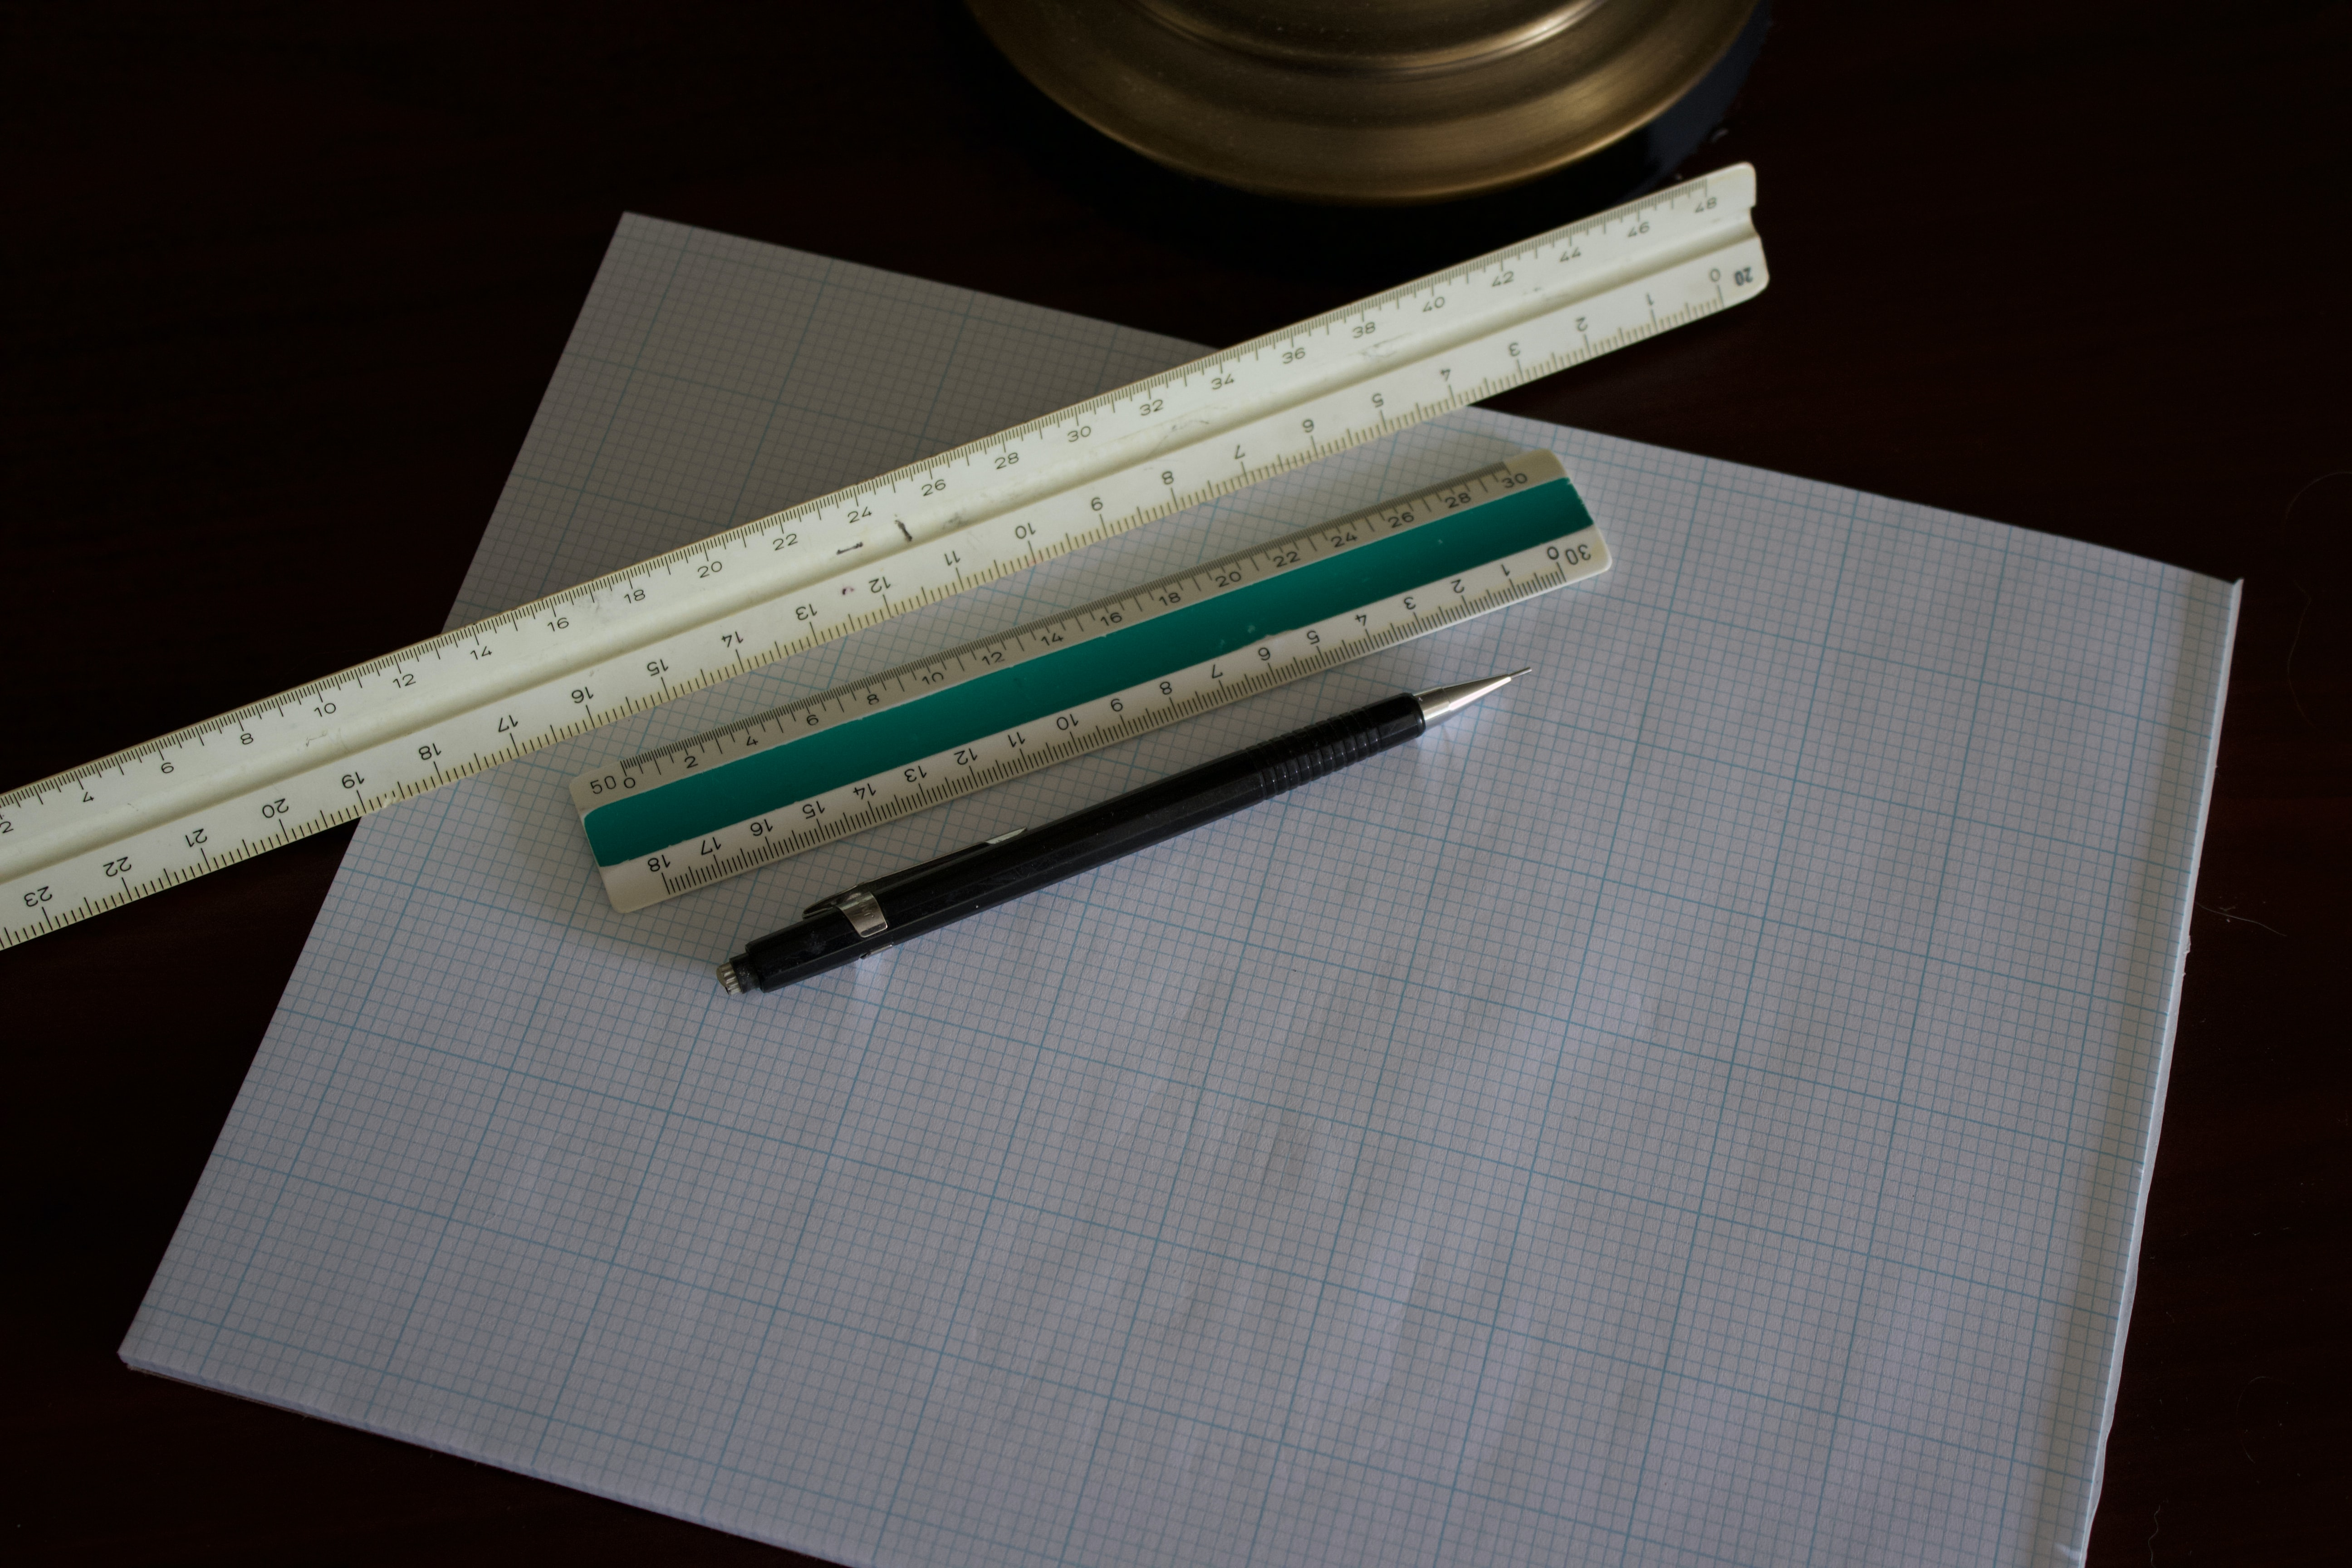 white ruler on paper